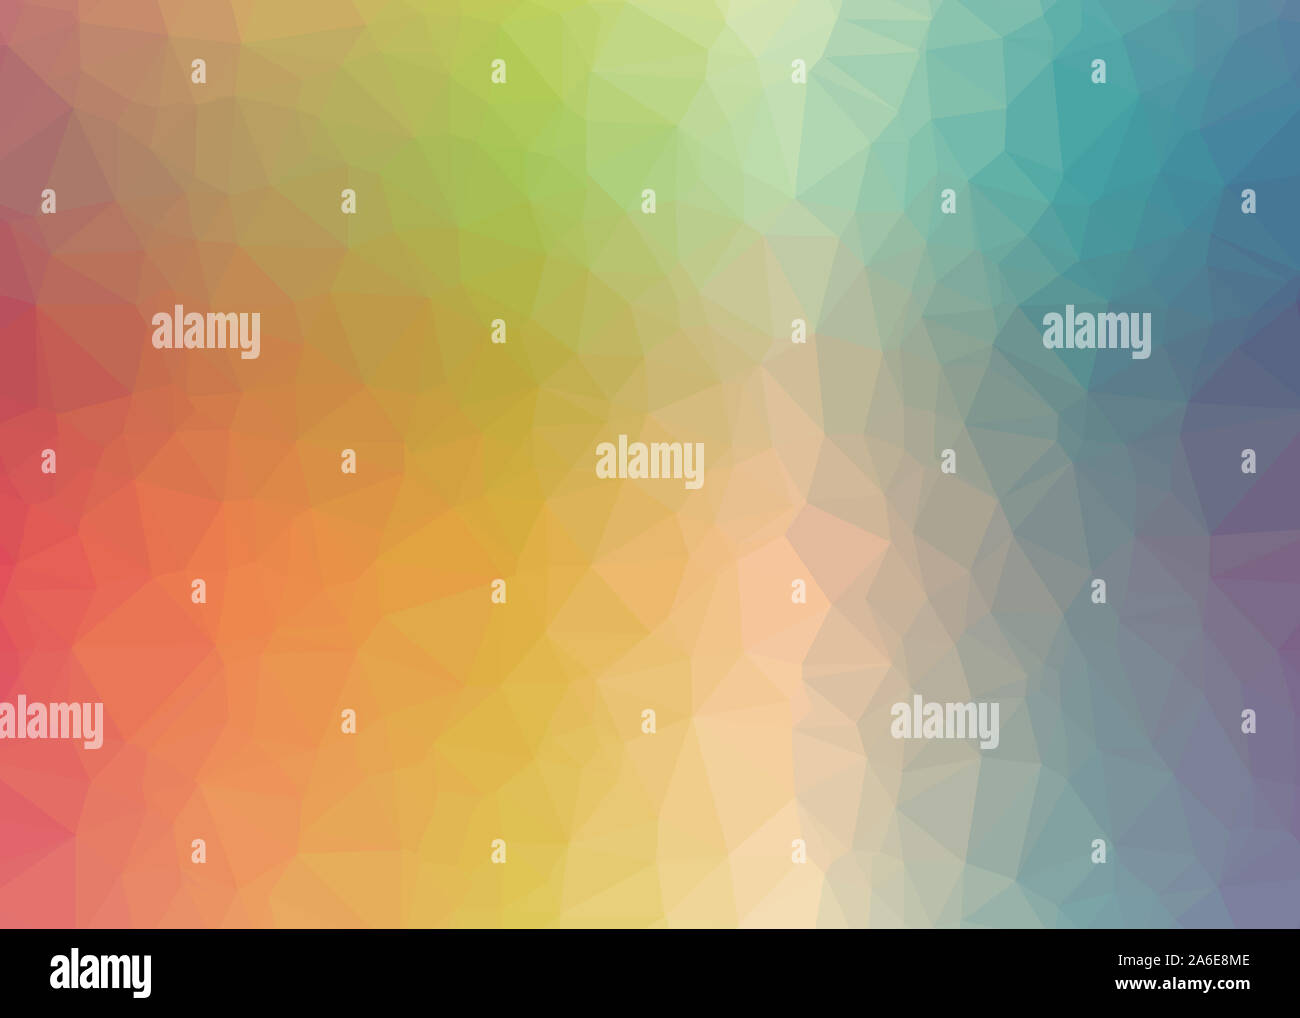 theme abstract background triangles trianglify colorful beautiful simple pattern design wallpaper illustration texture polygon low-poly graphic edges Stock Photo